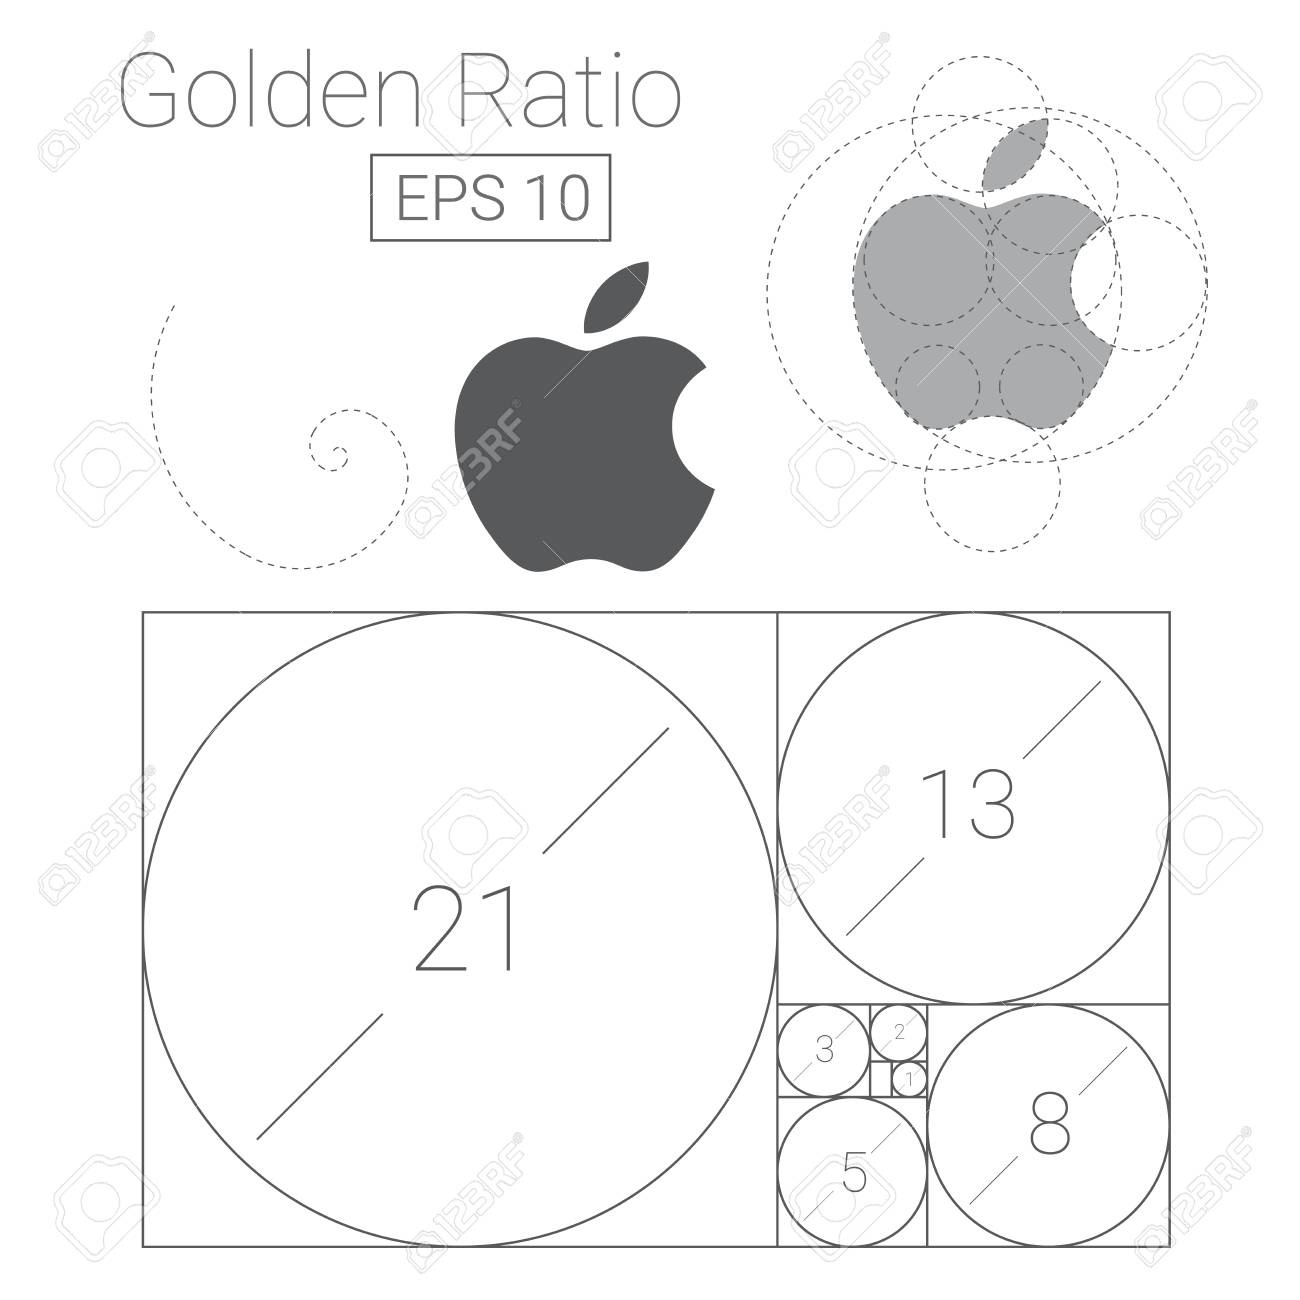 golden ratio template icon royalty free cliparts vectors and stock